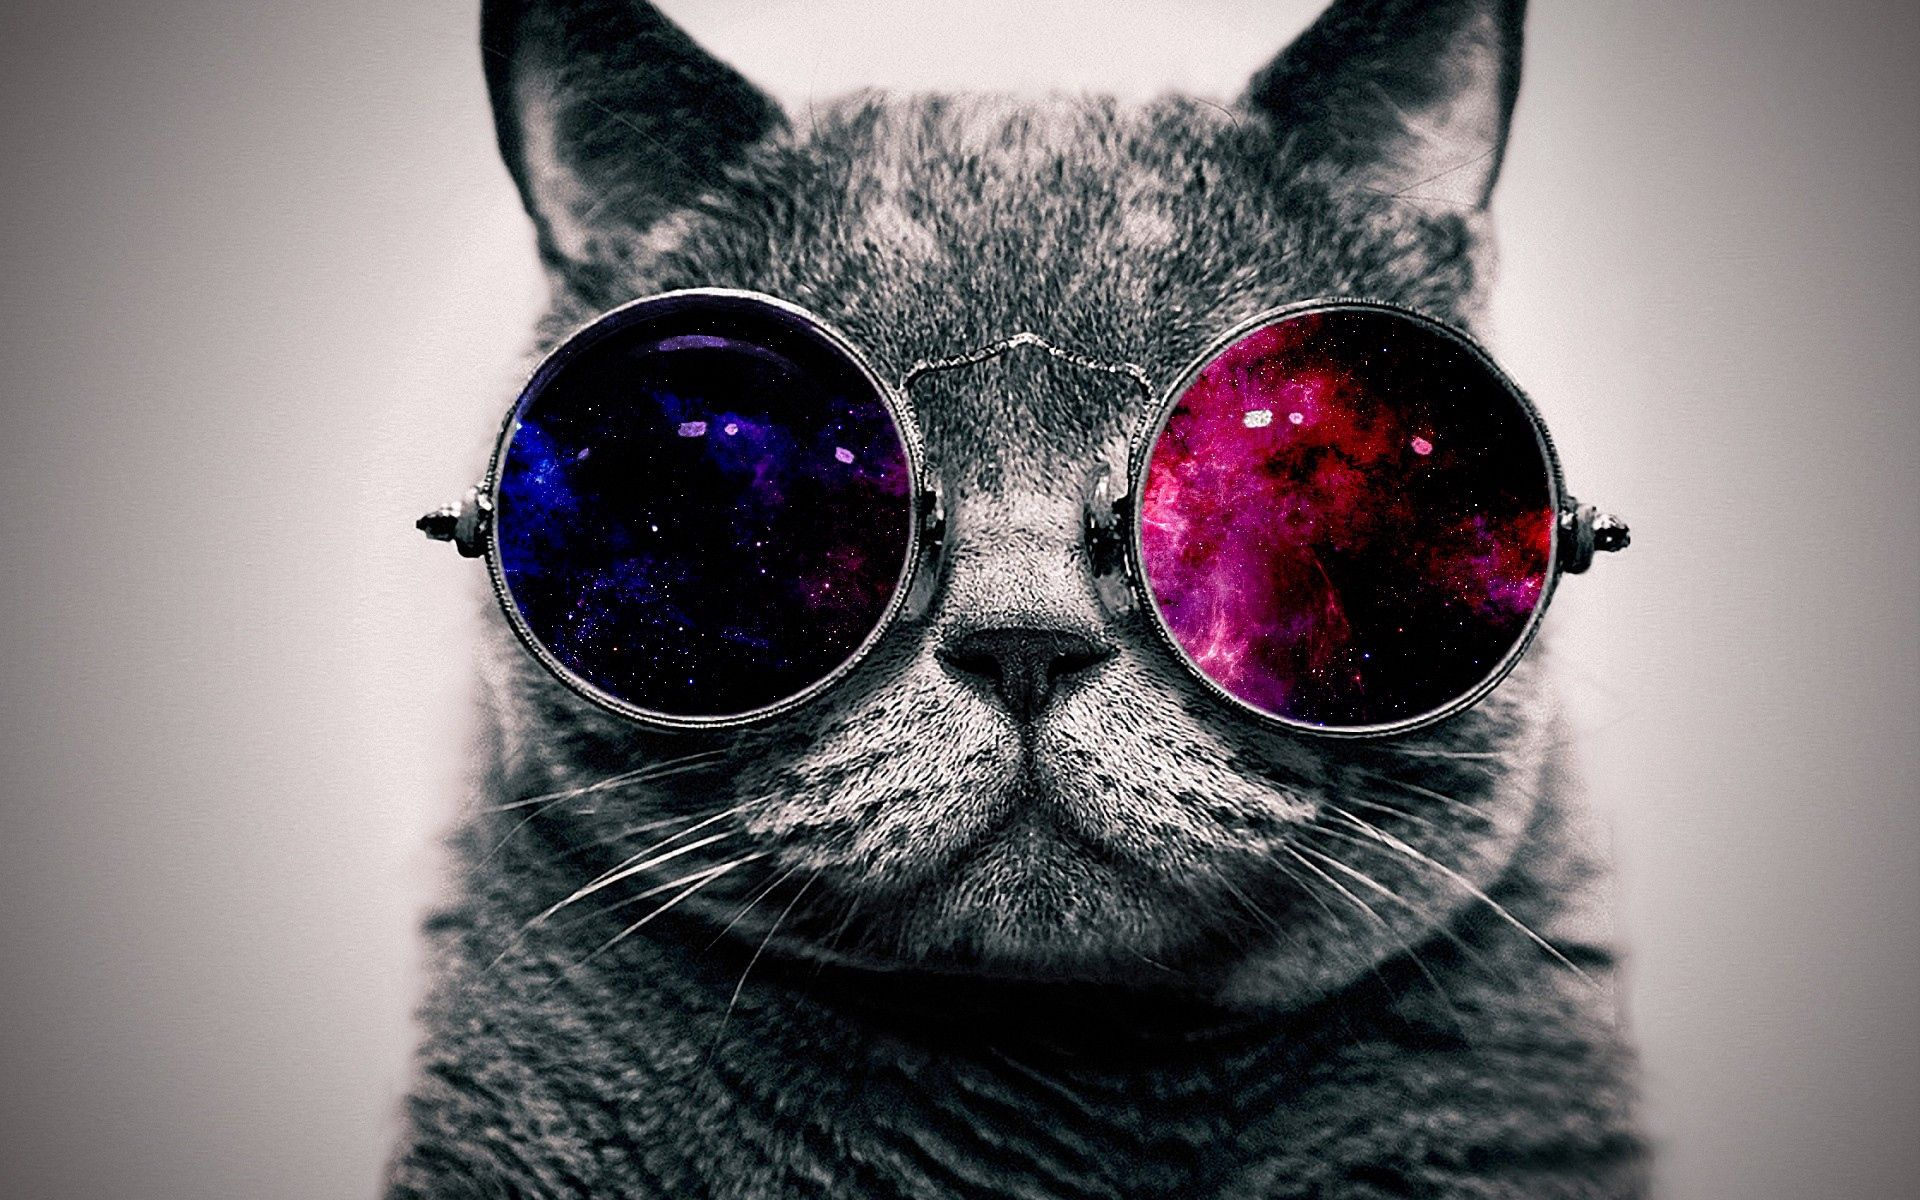 152021 download wallpaper Muzzle, Animals, Cat, Fat, Thick, Glasses, Spectacles screensavers and pictures for free